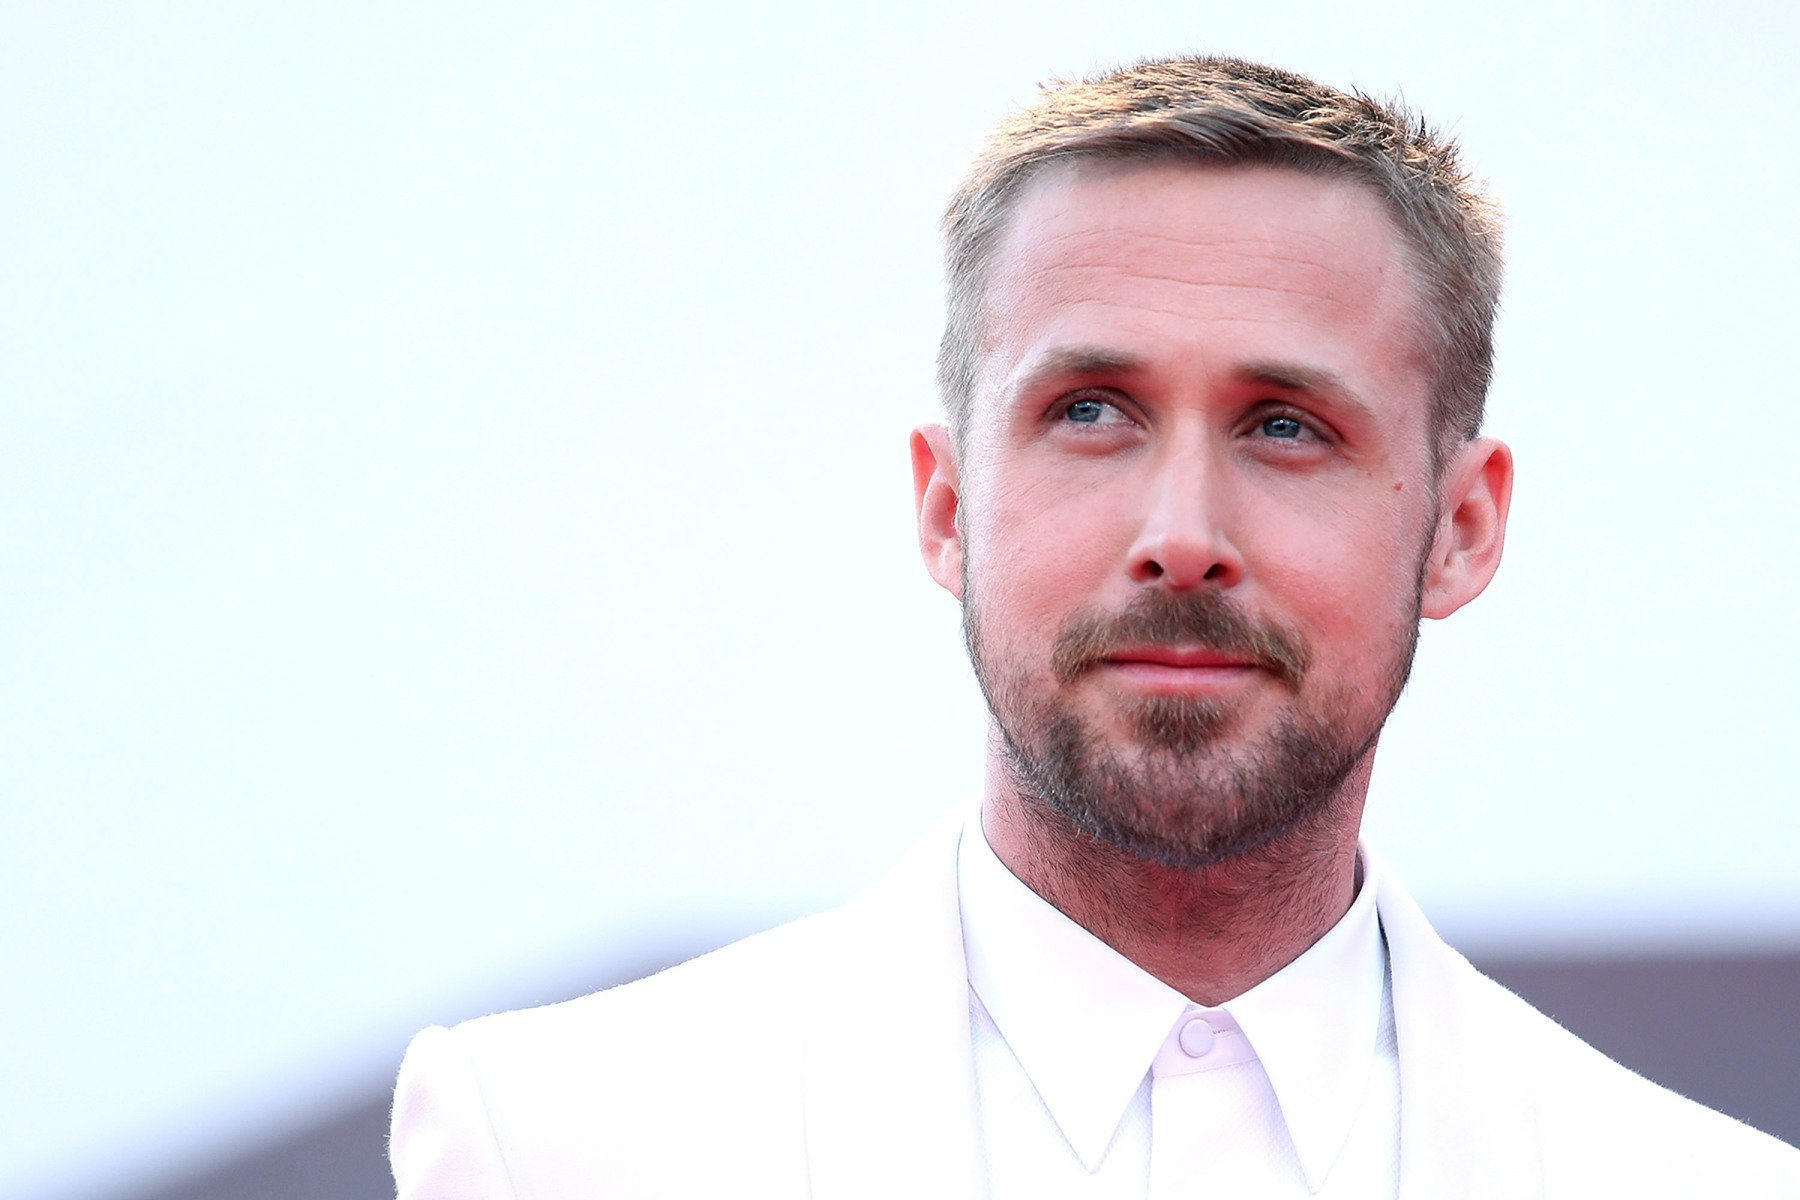 """Ryan Gosling walks the red carpet ahead of the opening ceremony and the 'First Man' screening during the 75th Venice Film Festival at Sala Grande on August 29, 2018 in Venice, Italy. Gosling developed a relationship with Neil Armstrong's two sons ahead of the filming of """"First Man."""" (Photo by Maria Moratti/Contigo/Getty Images)"""